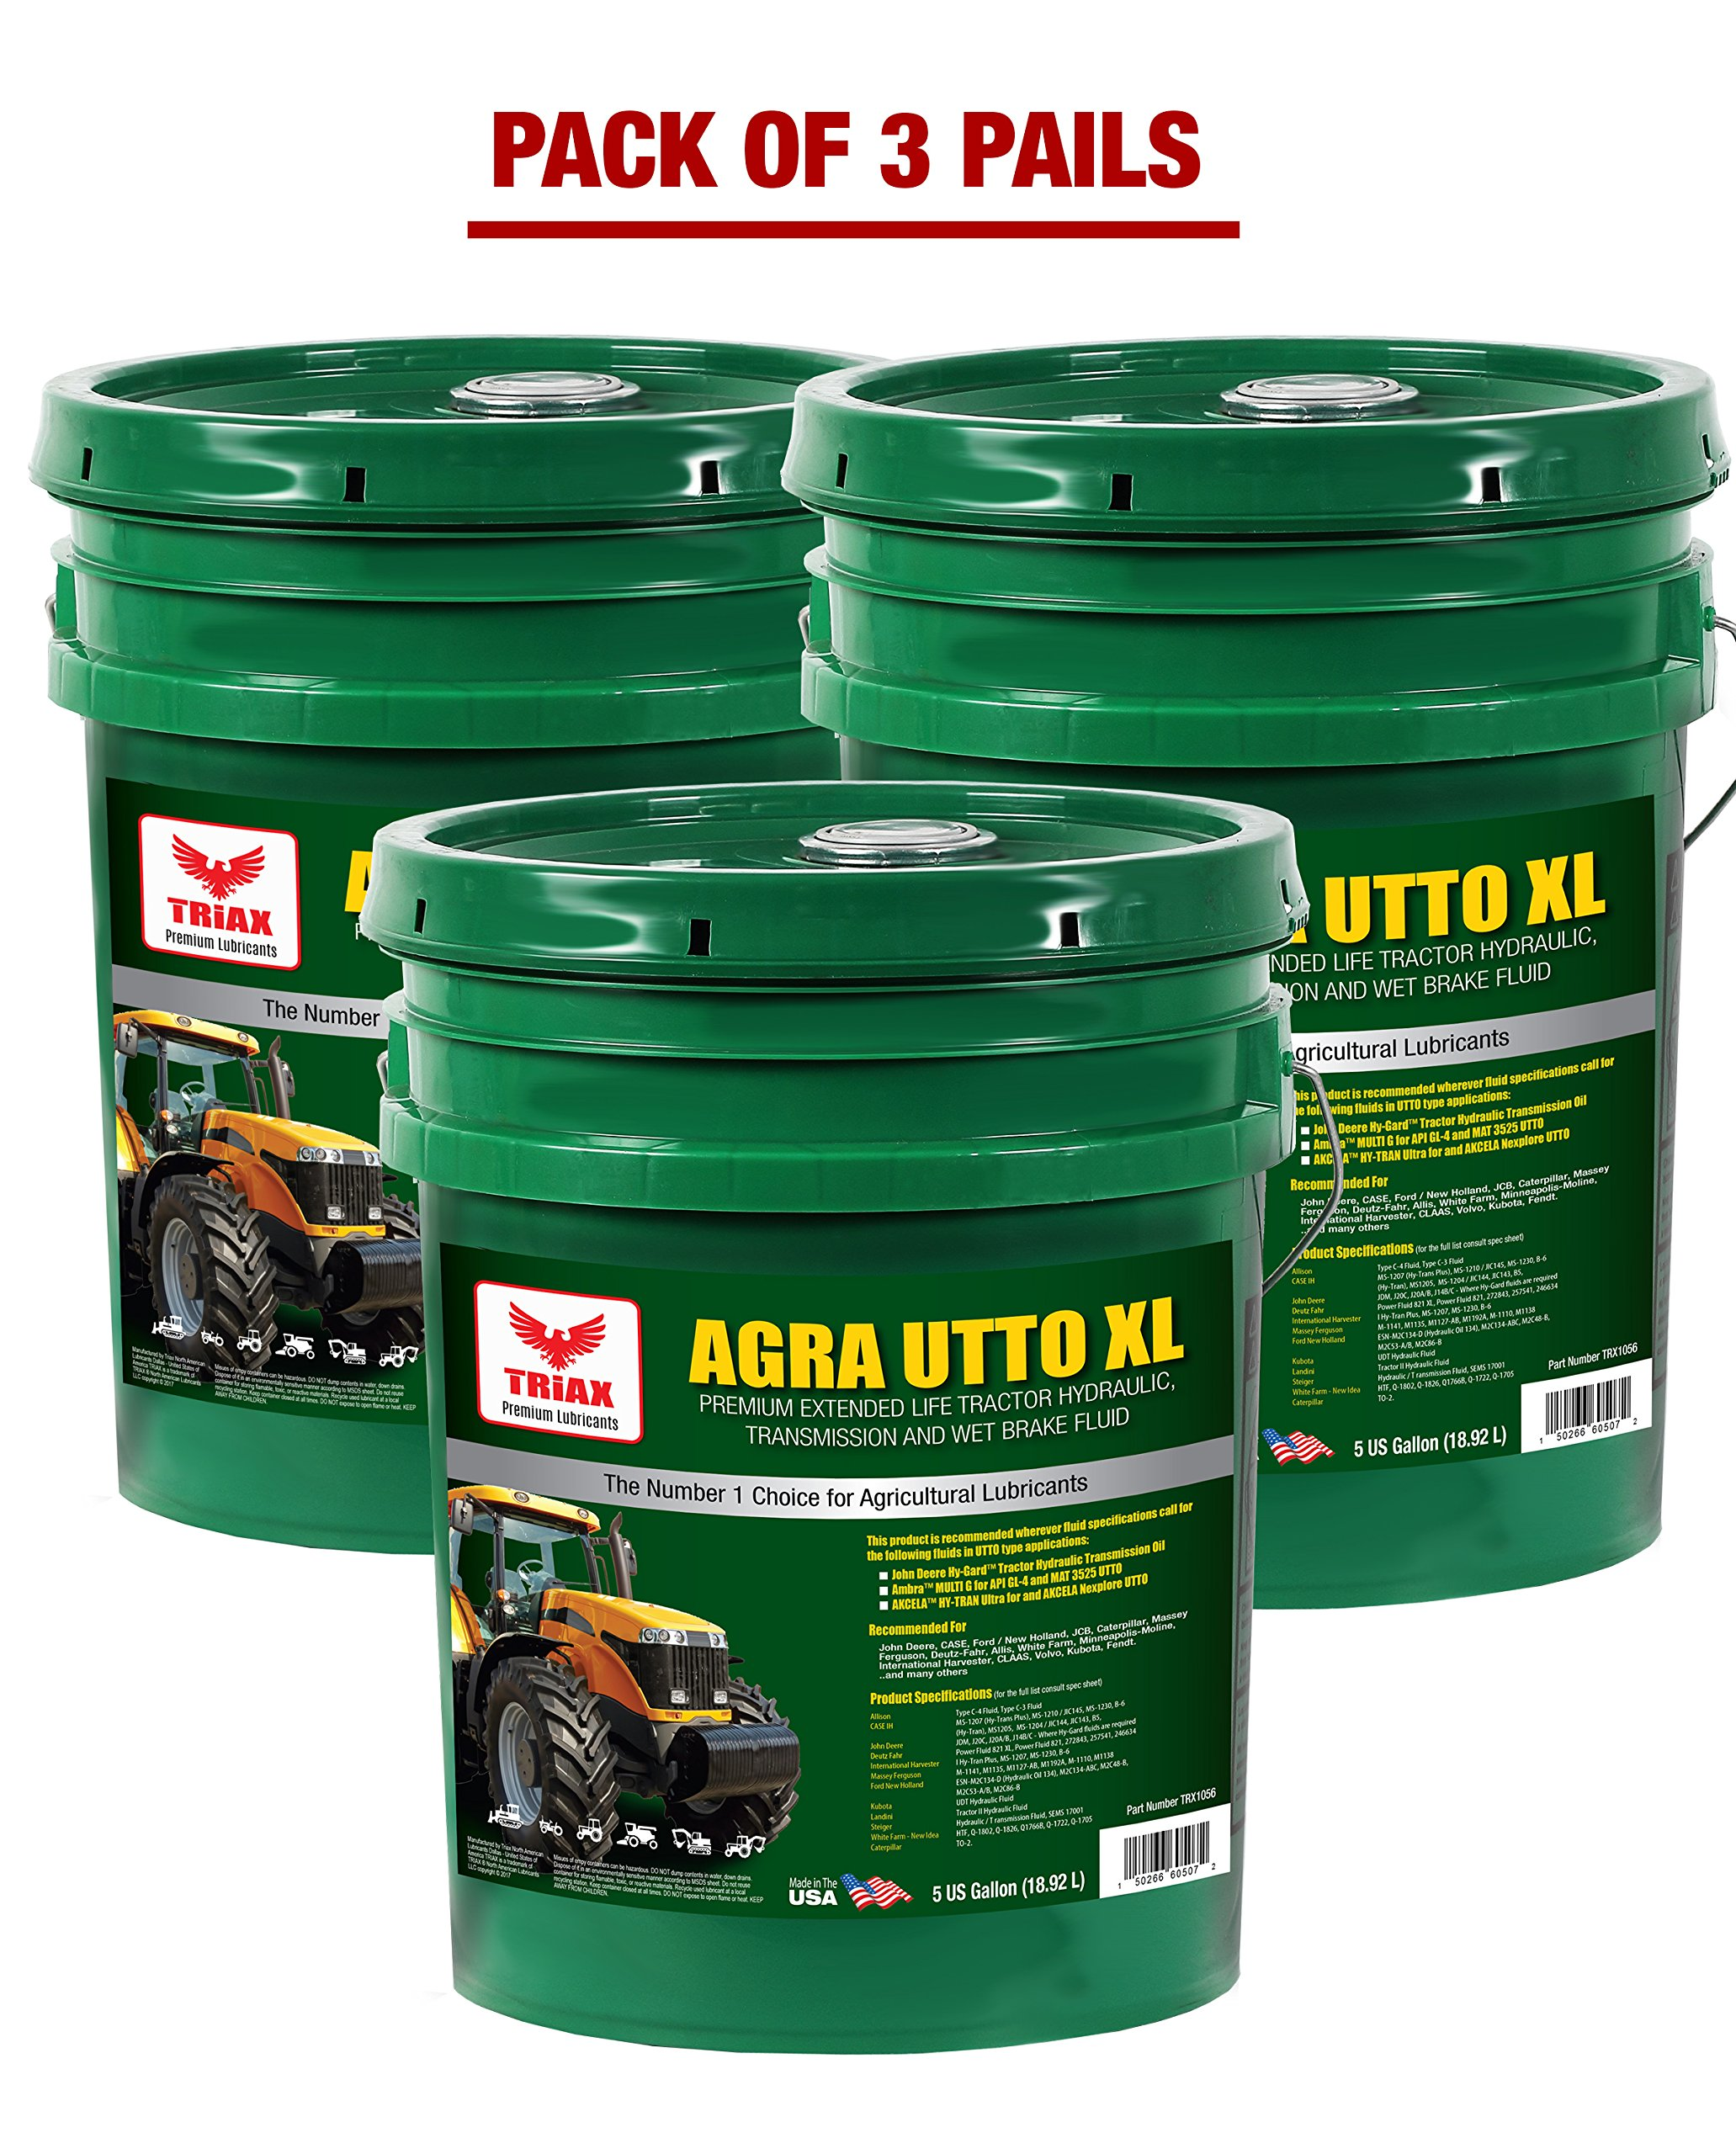 TRIAX AGRA UTTO XL SYNTHETIC BLEND Premium Tractor Hydraulic & Transmission Oil - Extreme Performance - Replaces Most OEM Fluids (3 x 5 GAL PAIL) by Triax